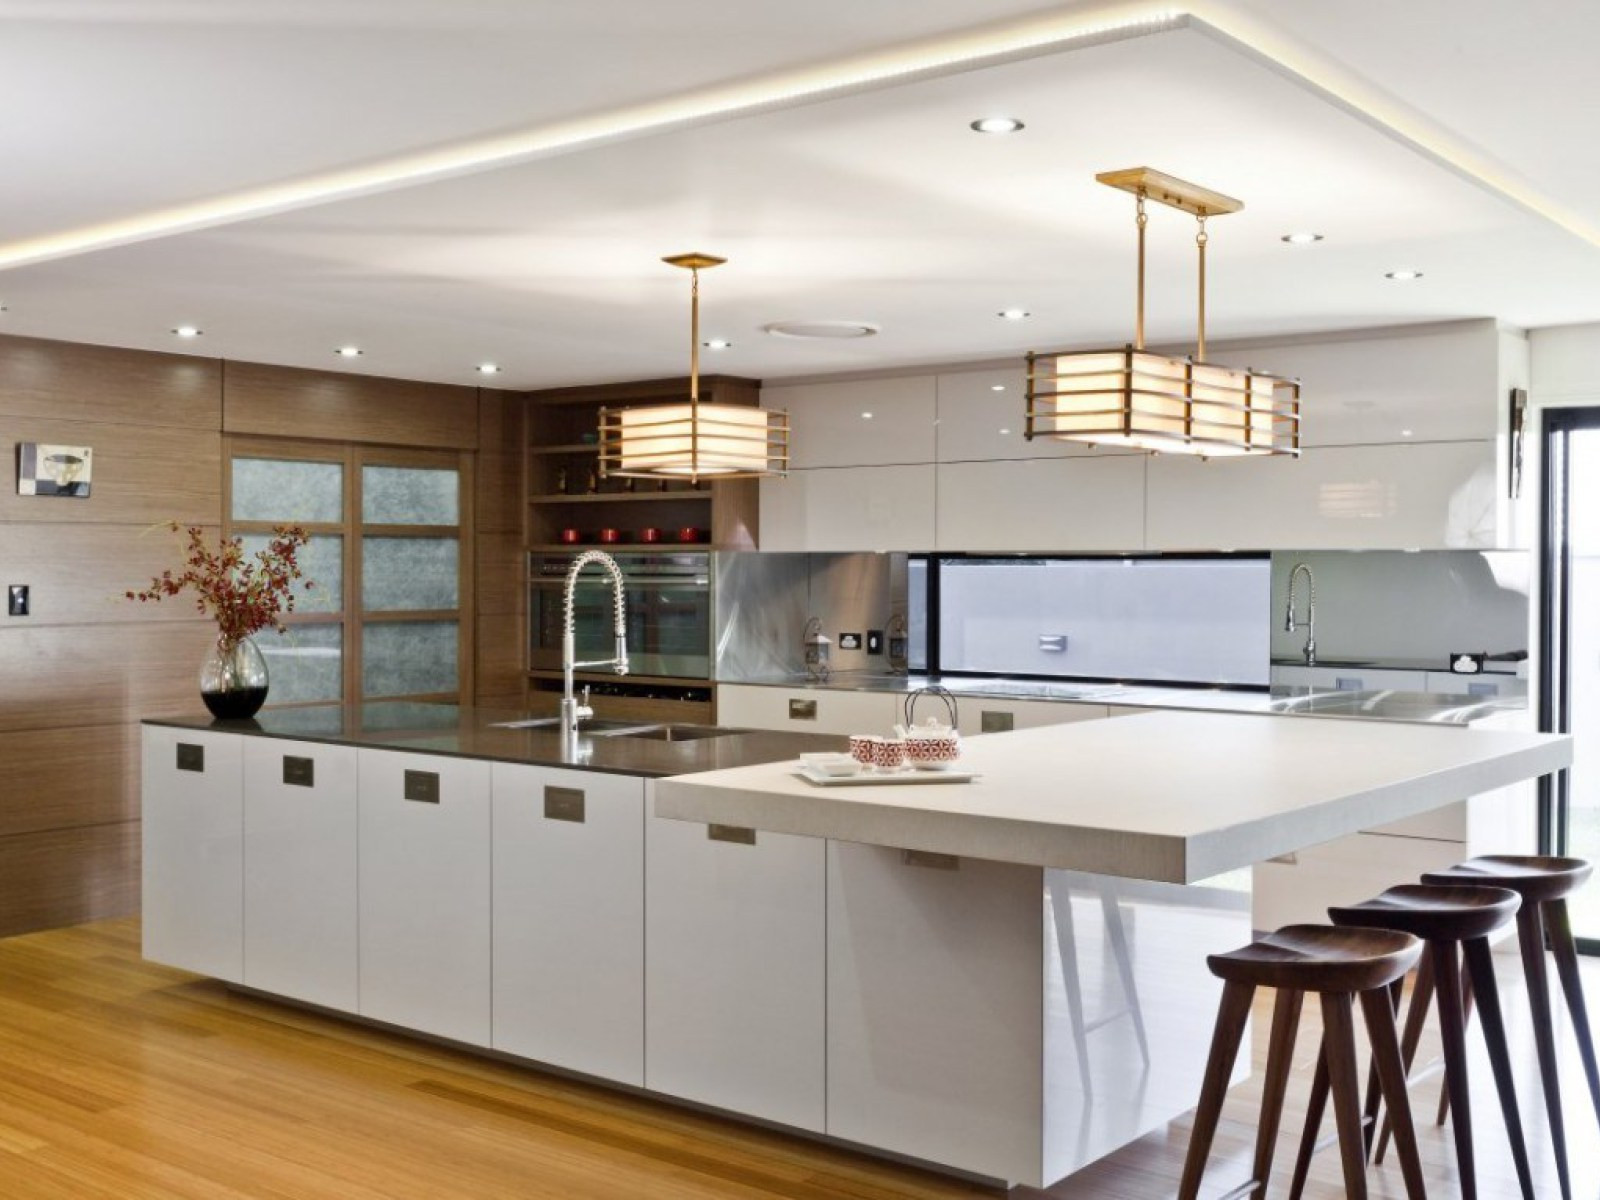 20 Marvelous Remodeling Kitchen Cost - Home, Family, Style a